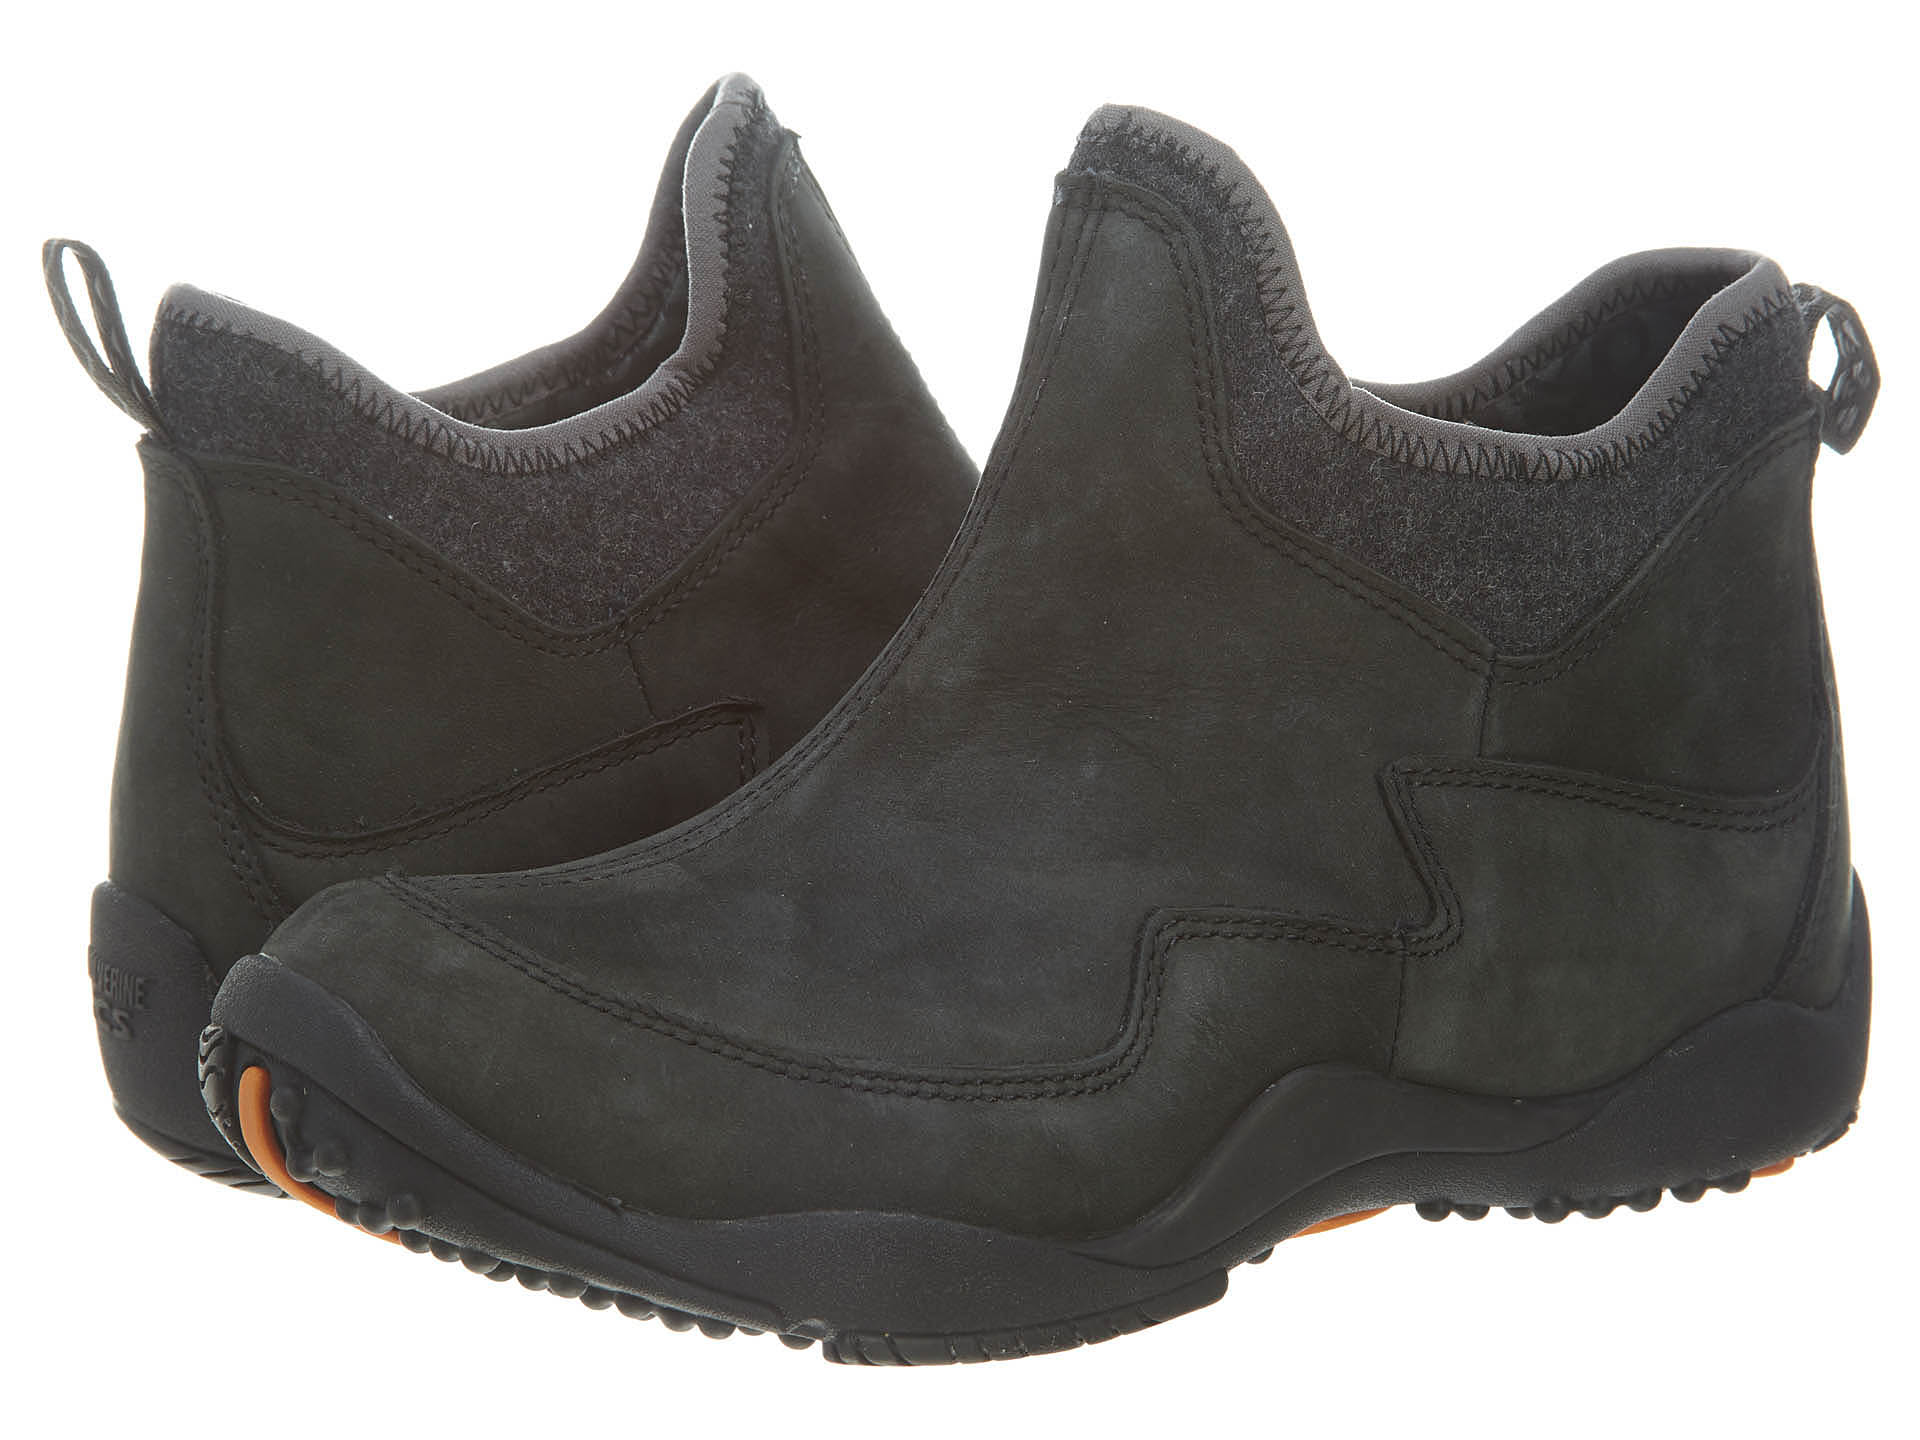 Wolverine Lady Anne Ics Wpf Boot Womens Style # W07036 by